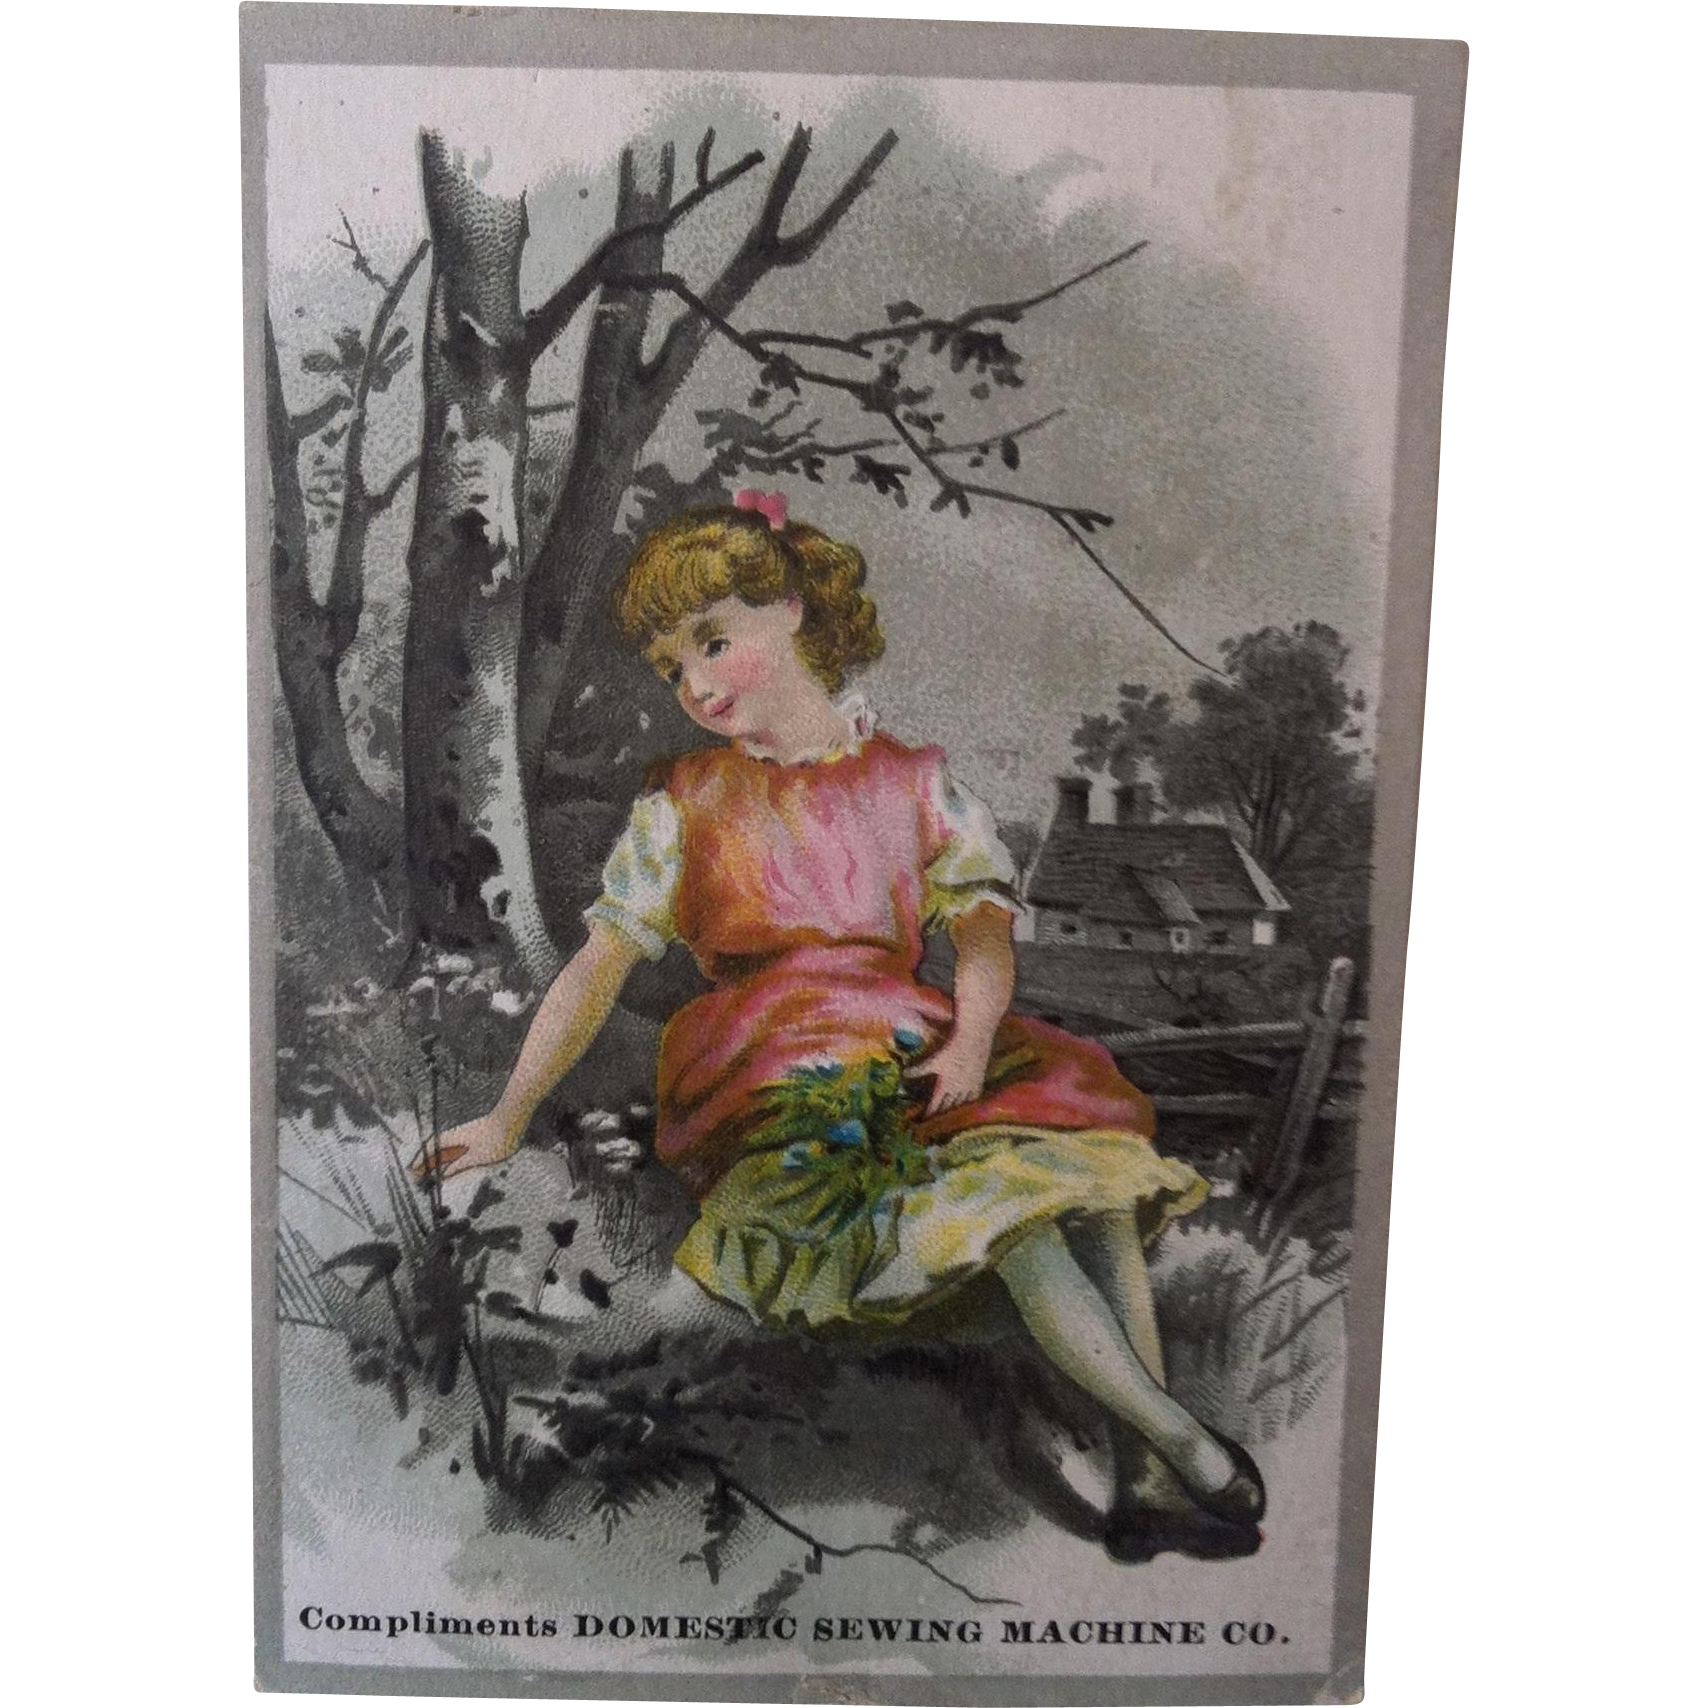 Domestic Sewing Machine Girl by Tree Trade Card